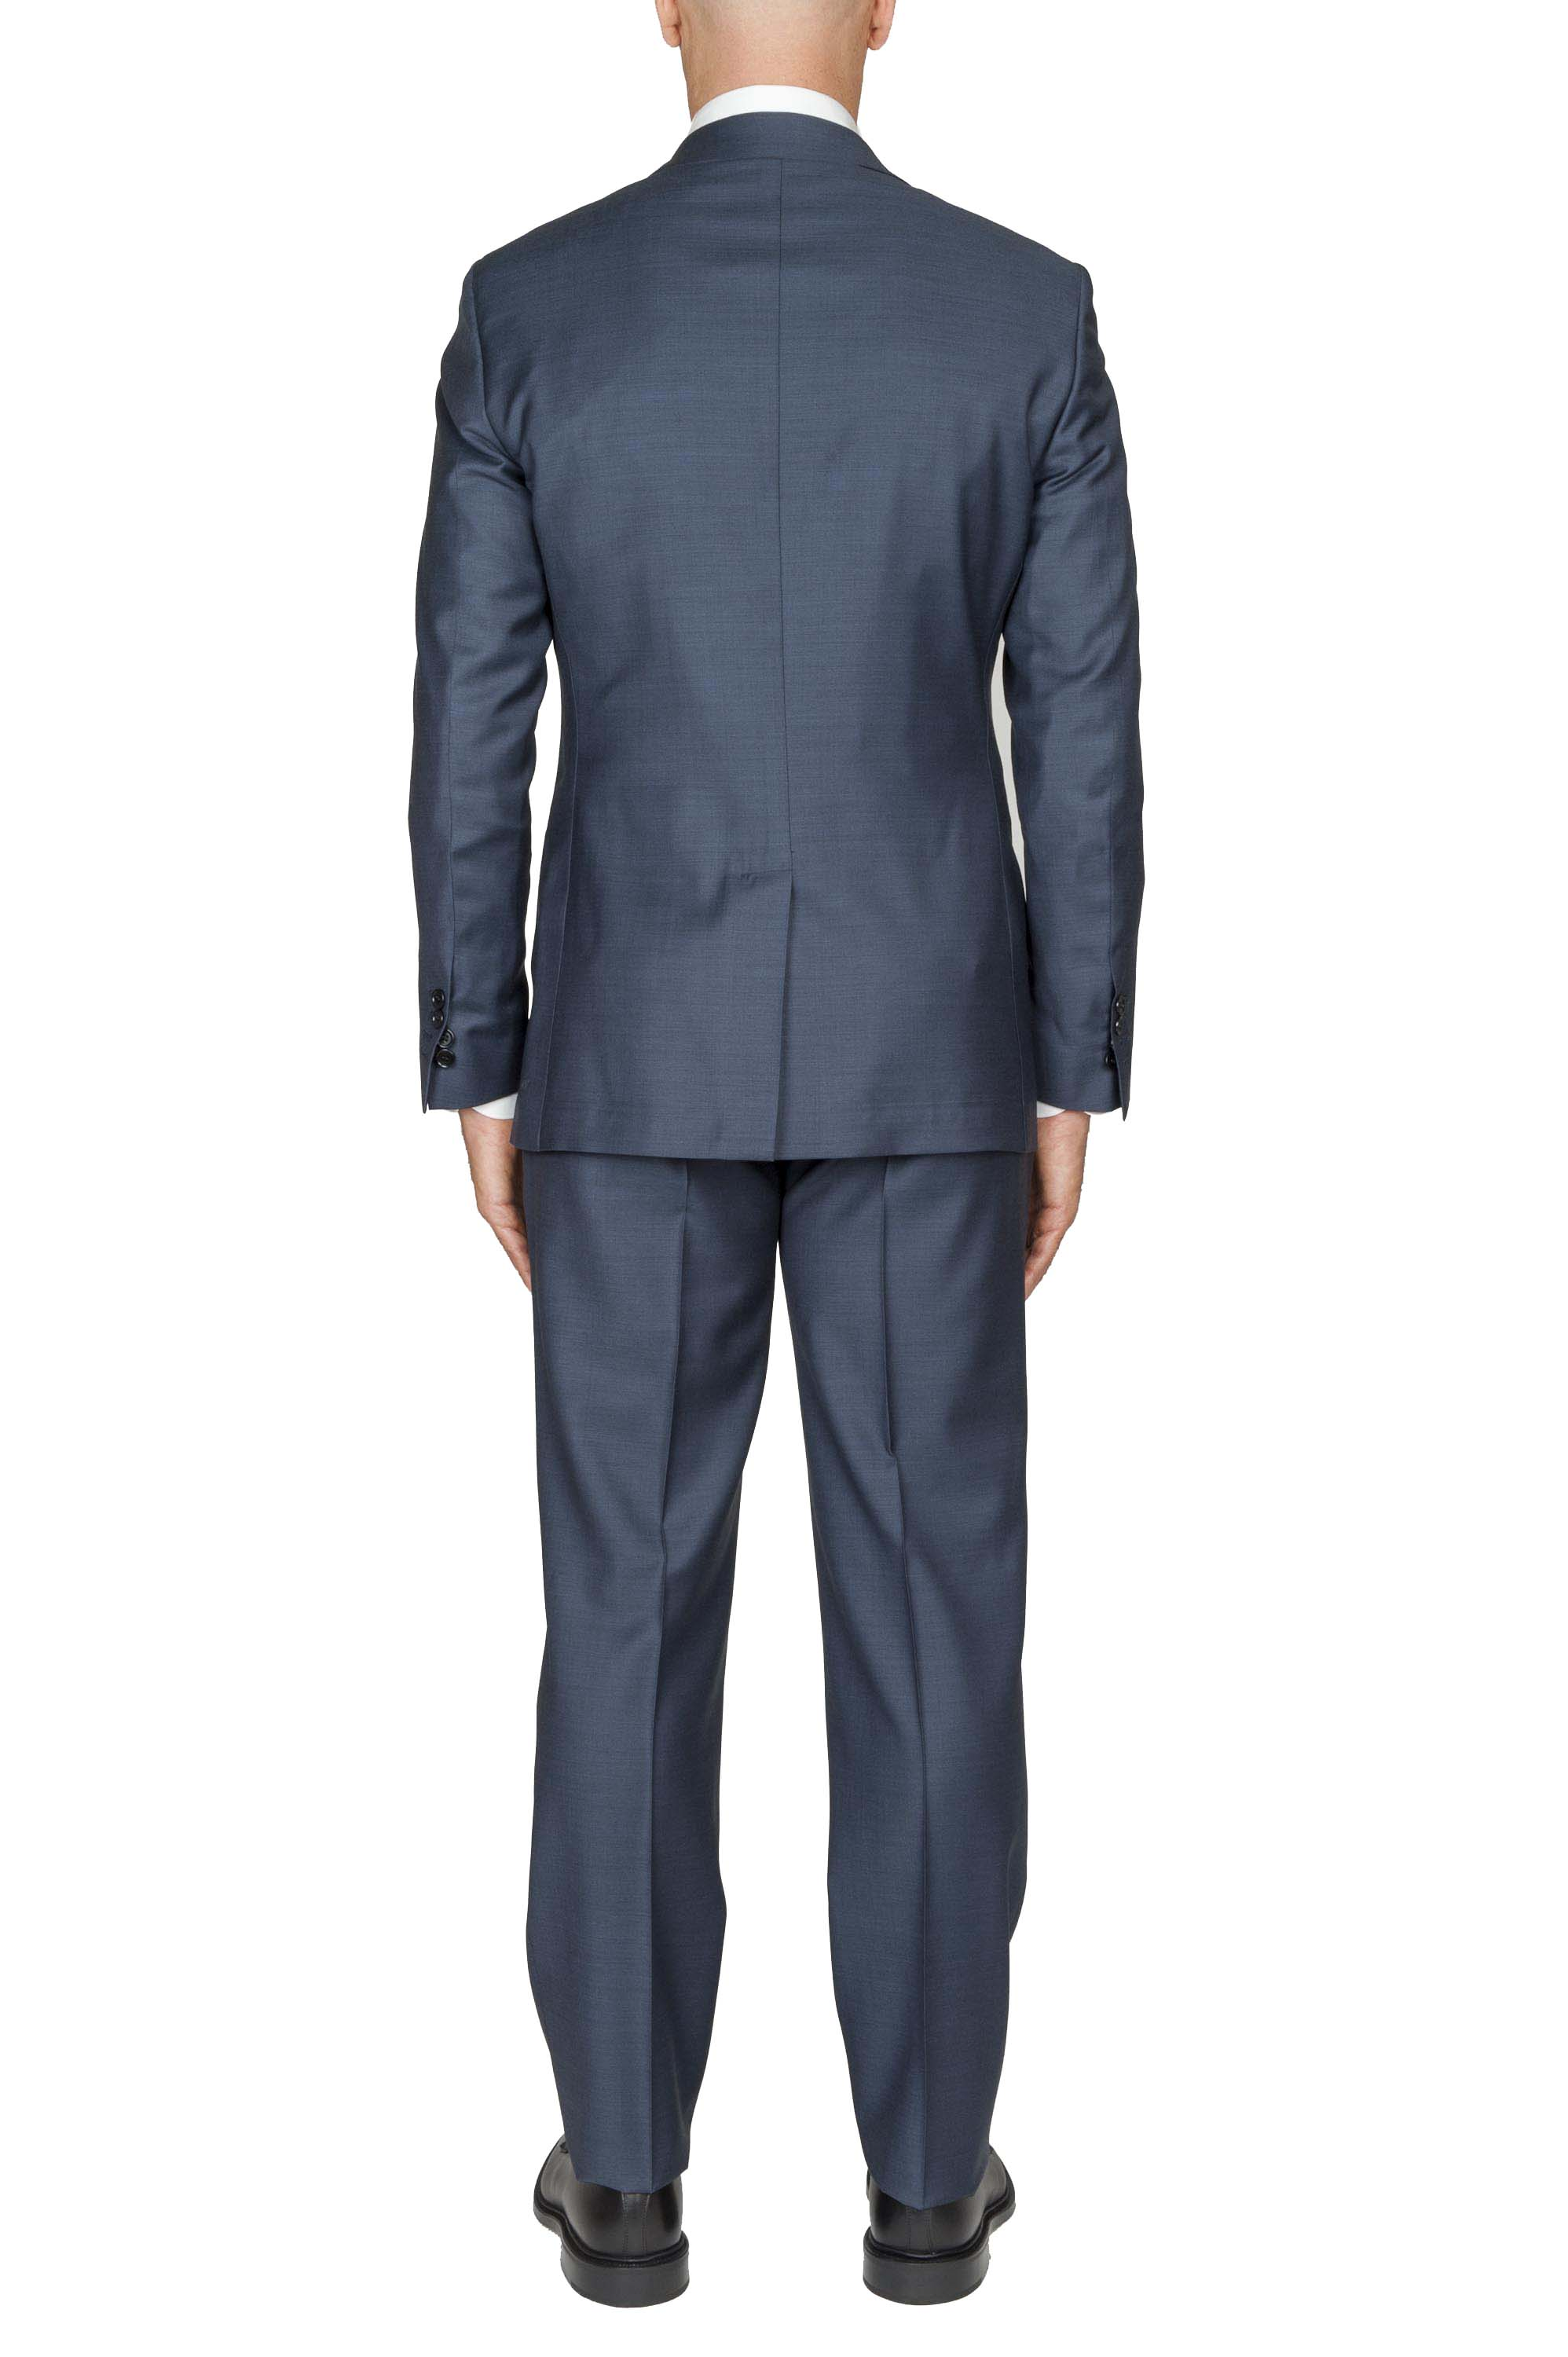 SBU Collection Summer 2020 Suits